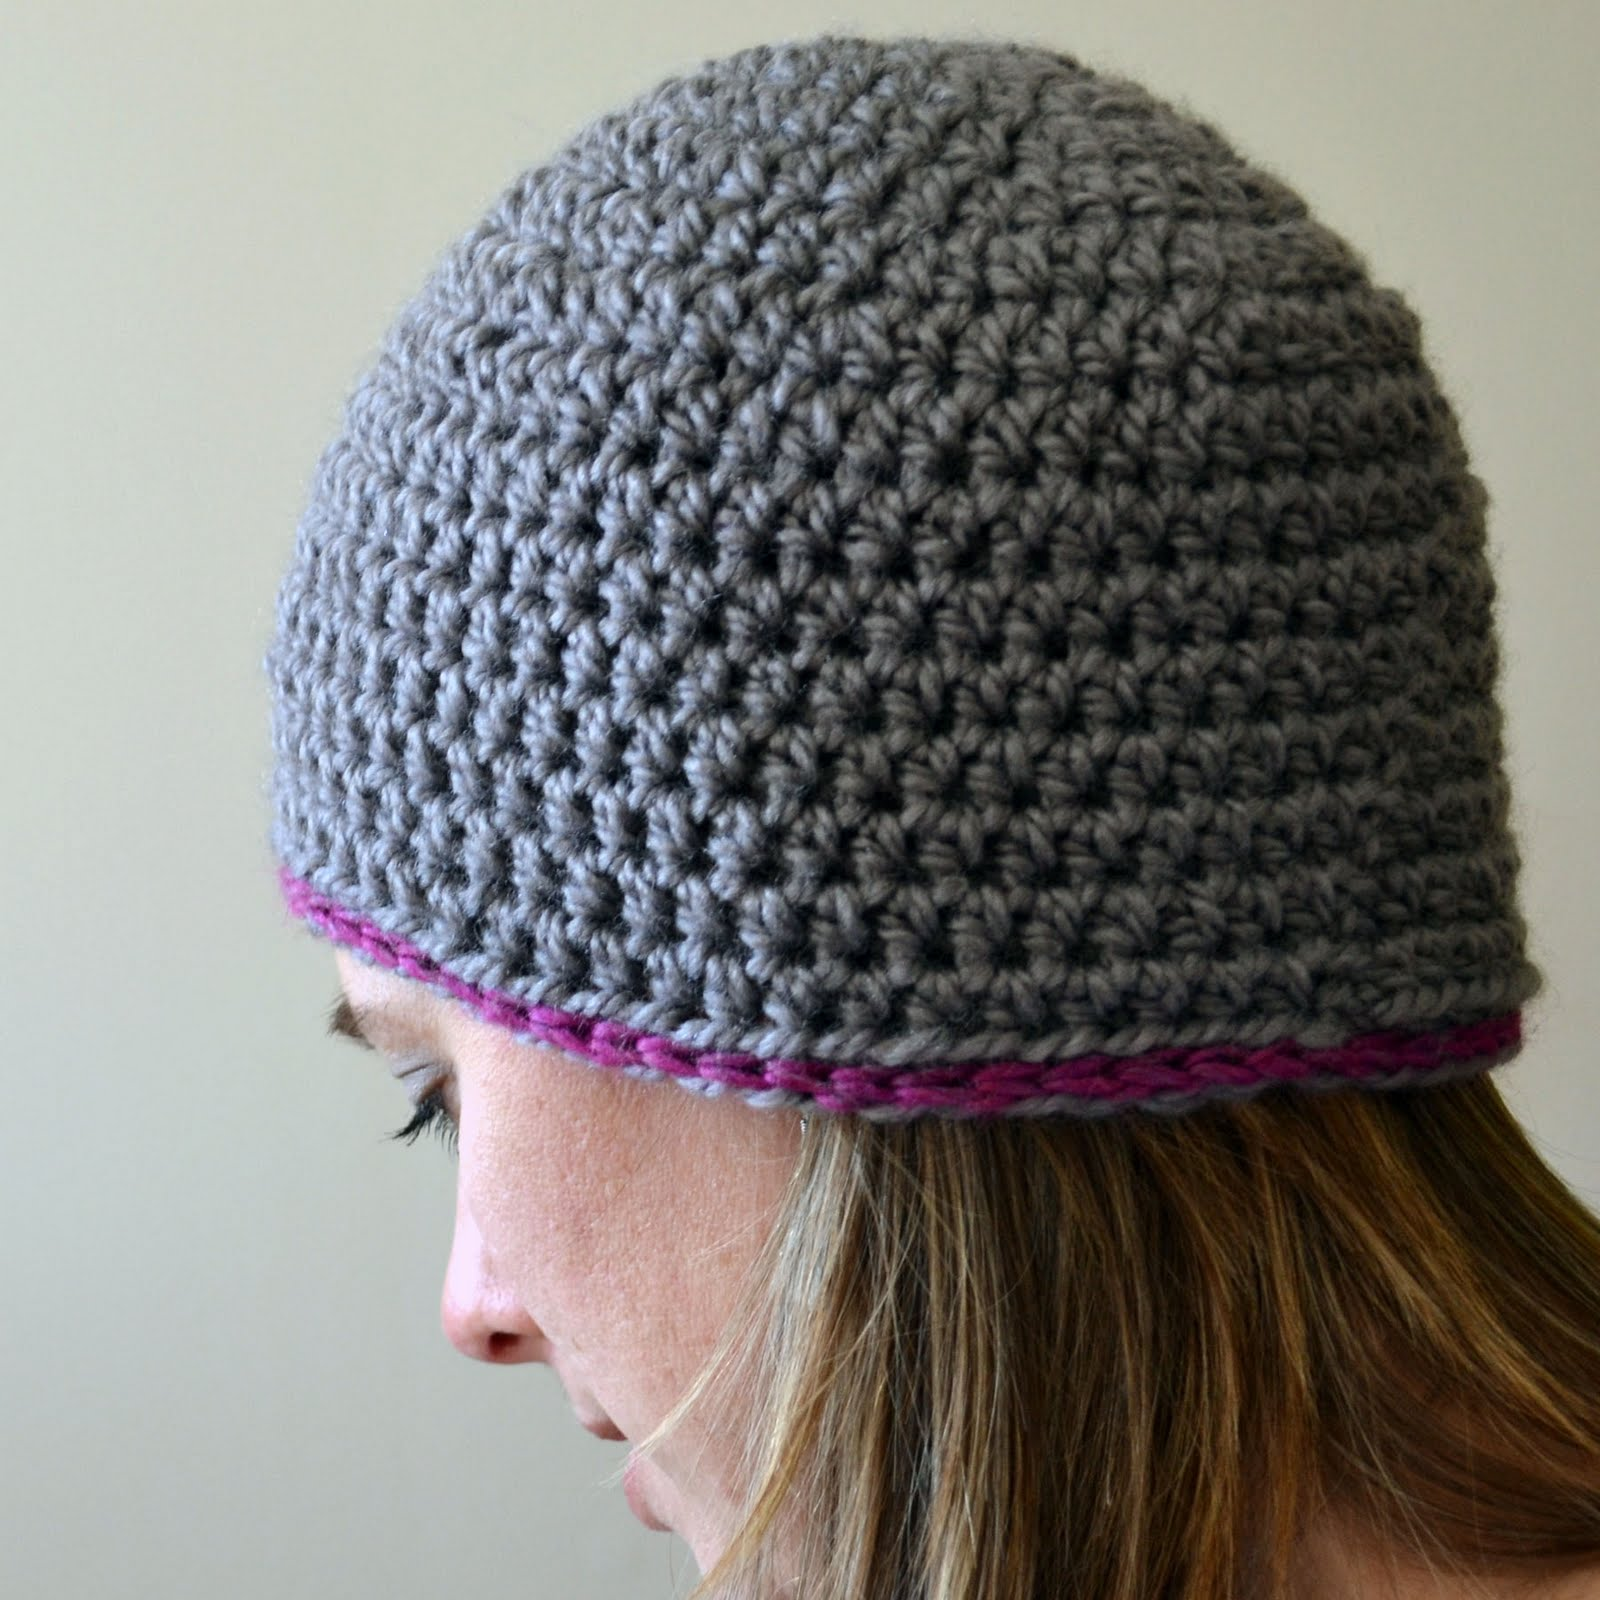 Crochet Pattern Hat Beanie : Crochet in Color: Chunky Beanie Pattern